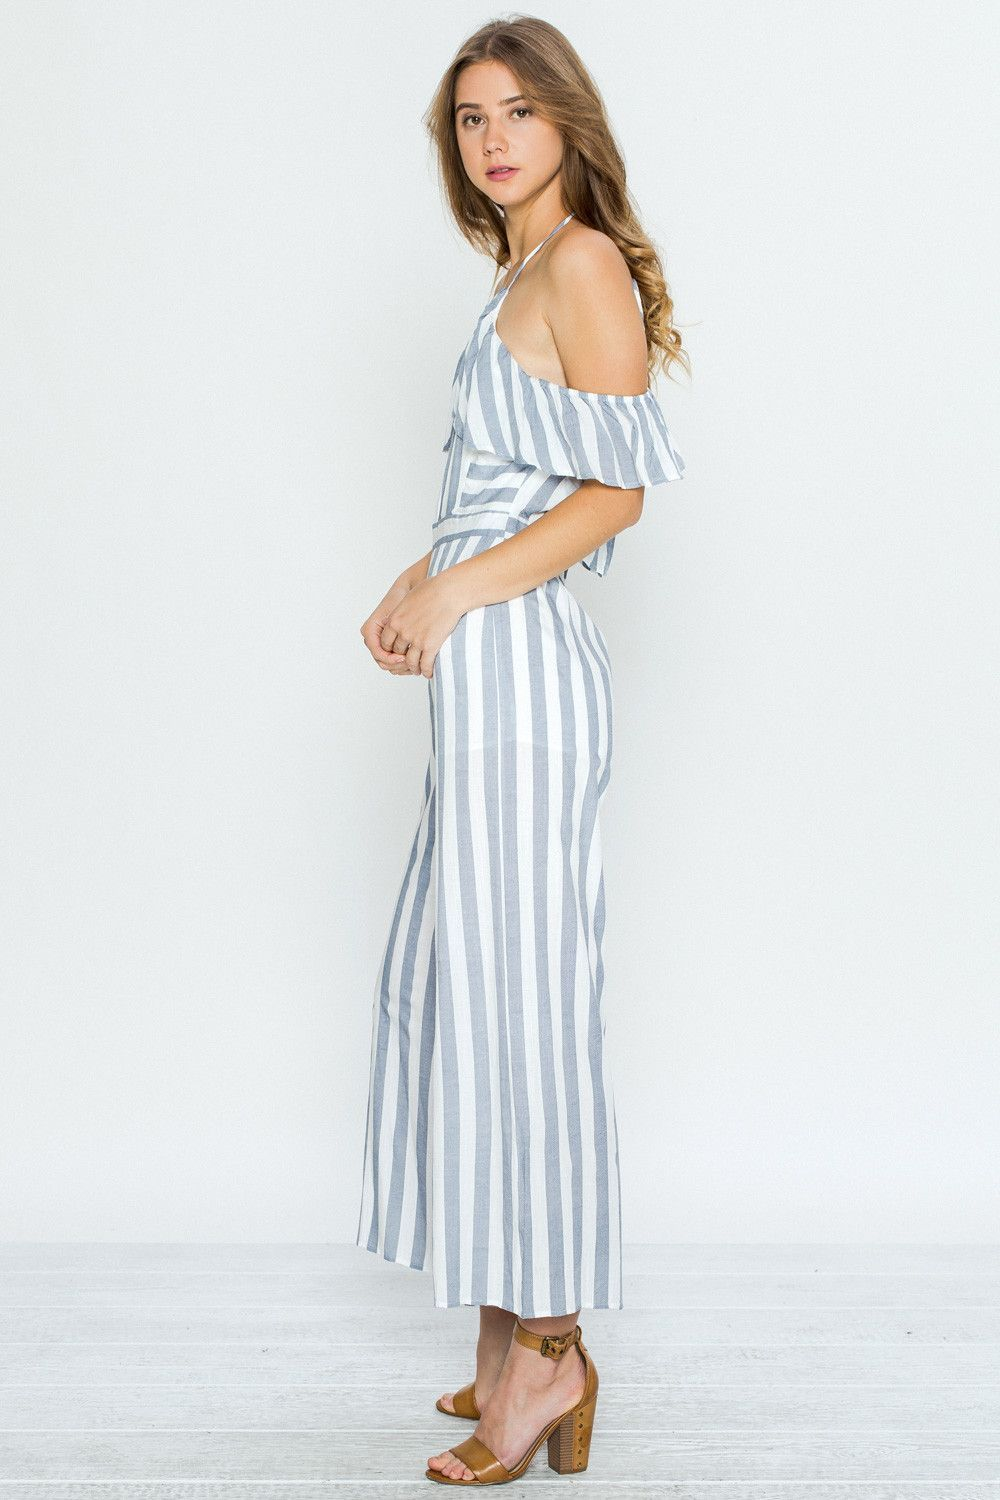 0b08fed3e18 Be a fashion statement in this this Off Shoulder Blue Striped Ruffle  Jumpsuit. It features an adjustable strap halter top and full back look  with an off ...